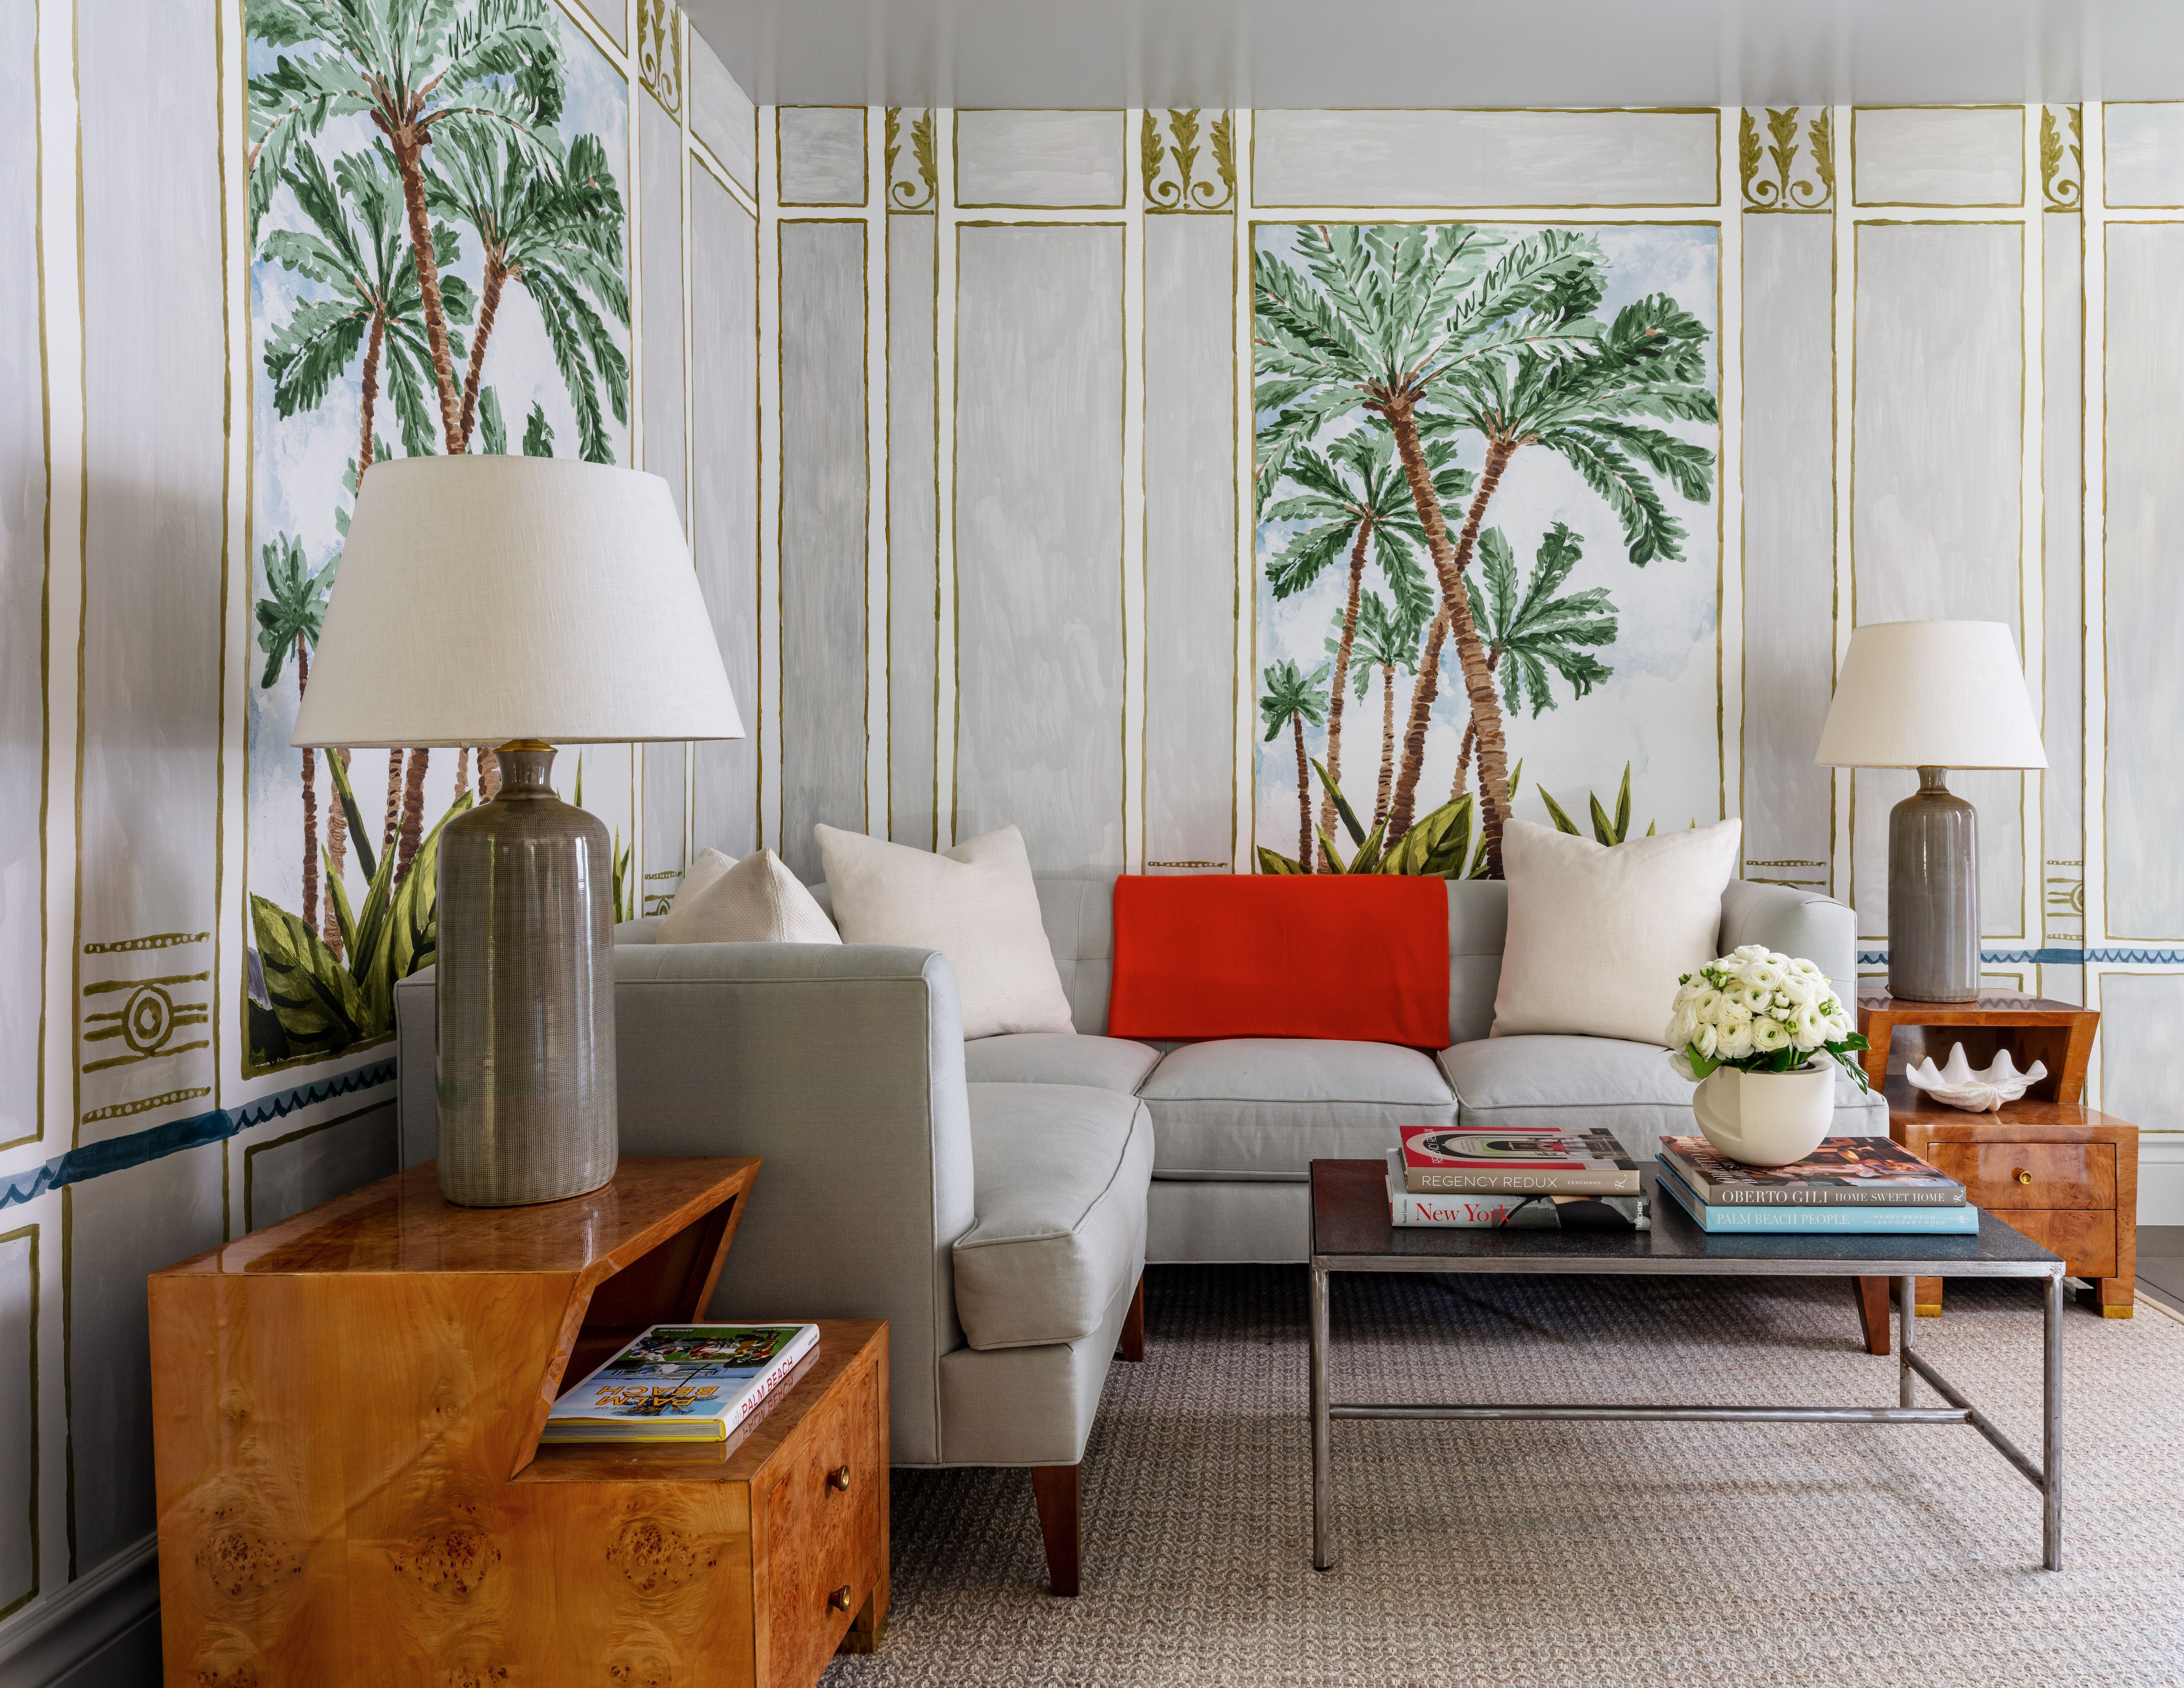 9 Modern Wallpaper Ideas - Colorful Statement Wallcoverings